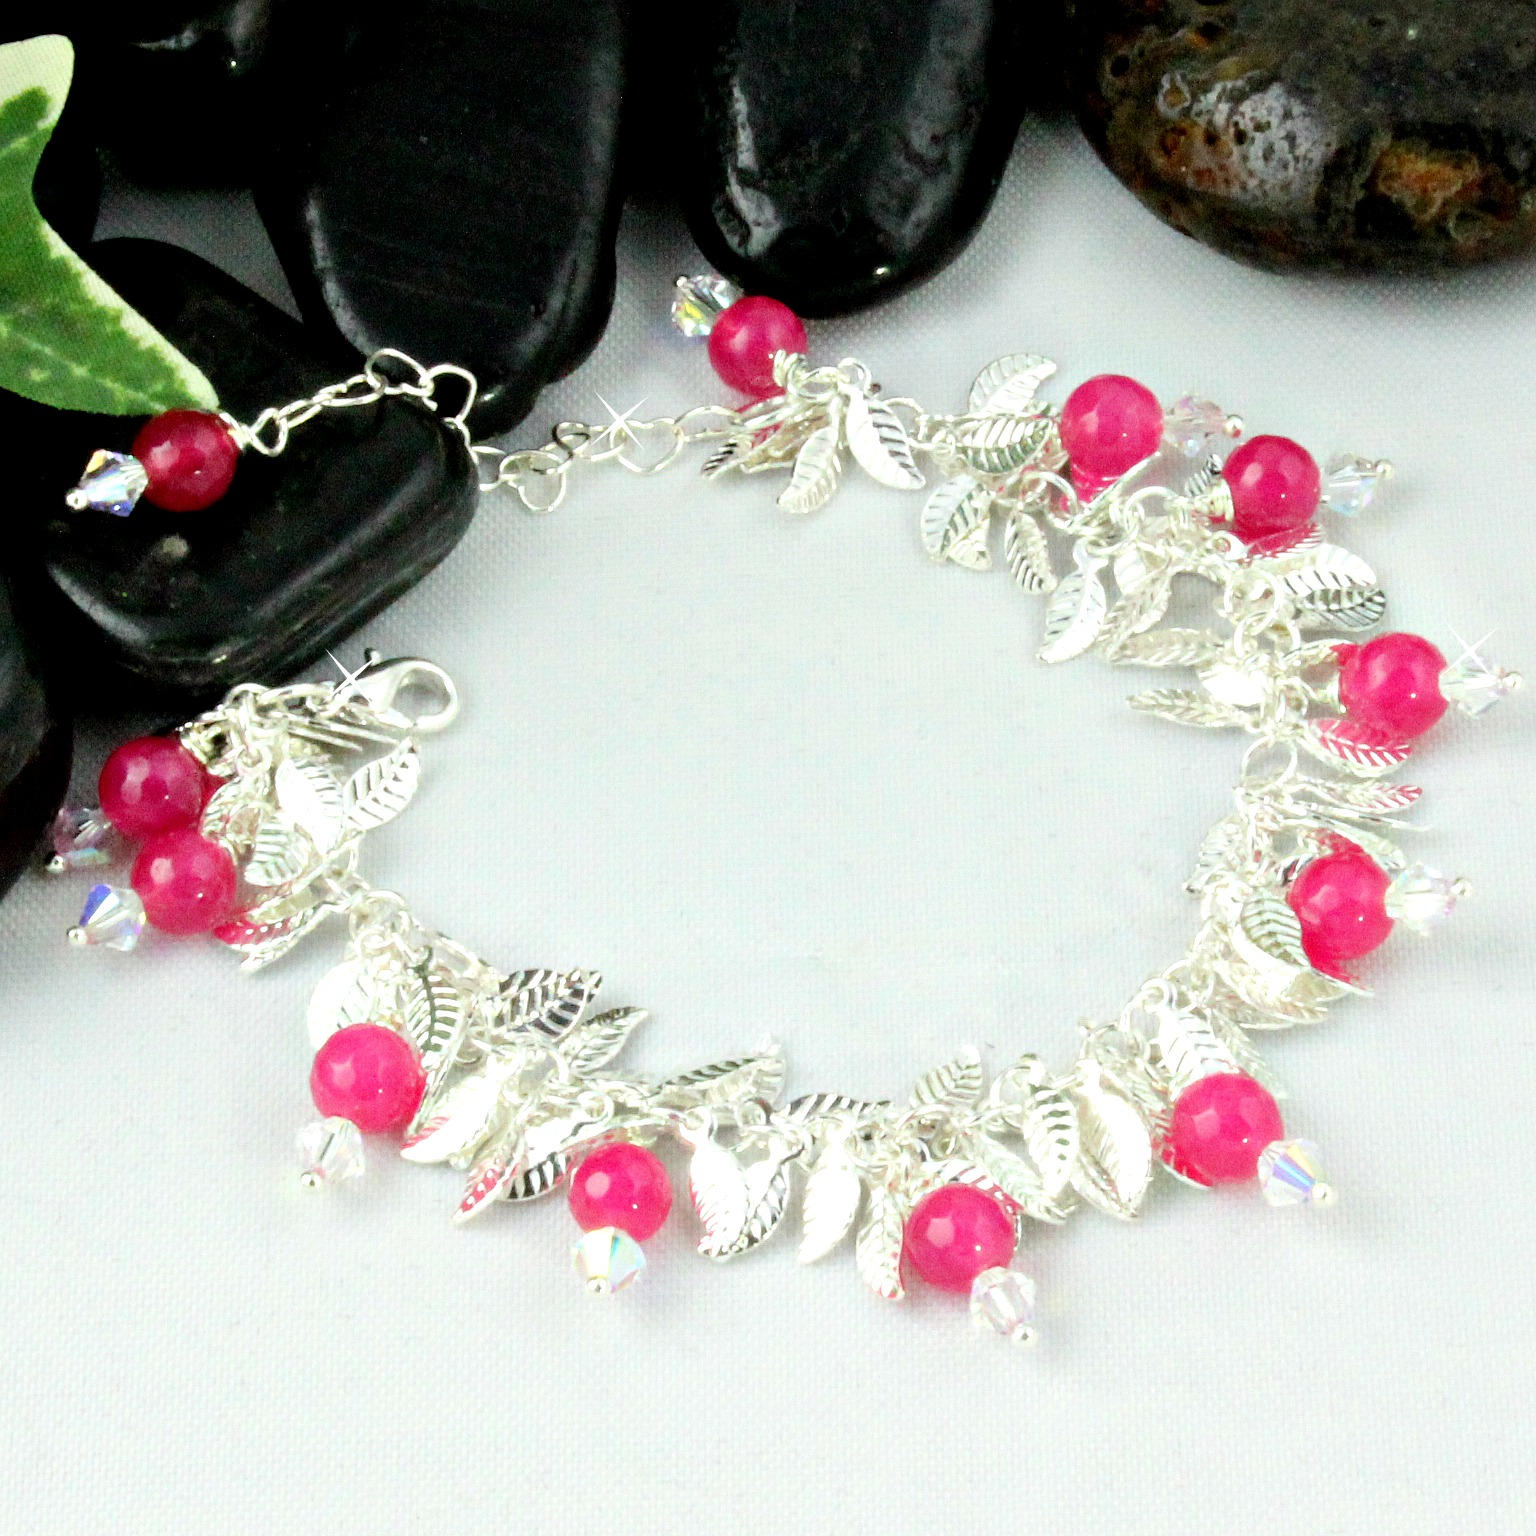 bracelet webstore sapphire type number pink silver l diamond product stone bracelets sterling jewellery h samuel category